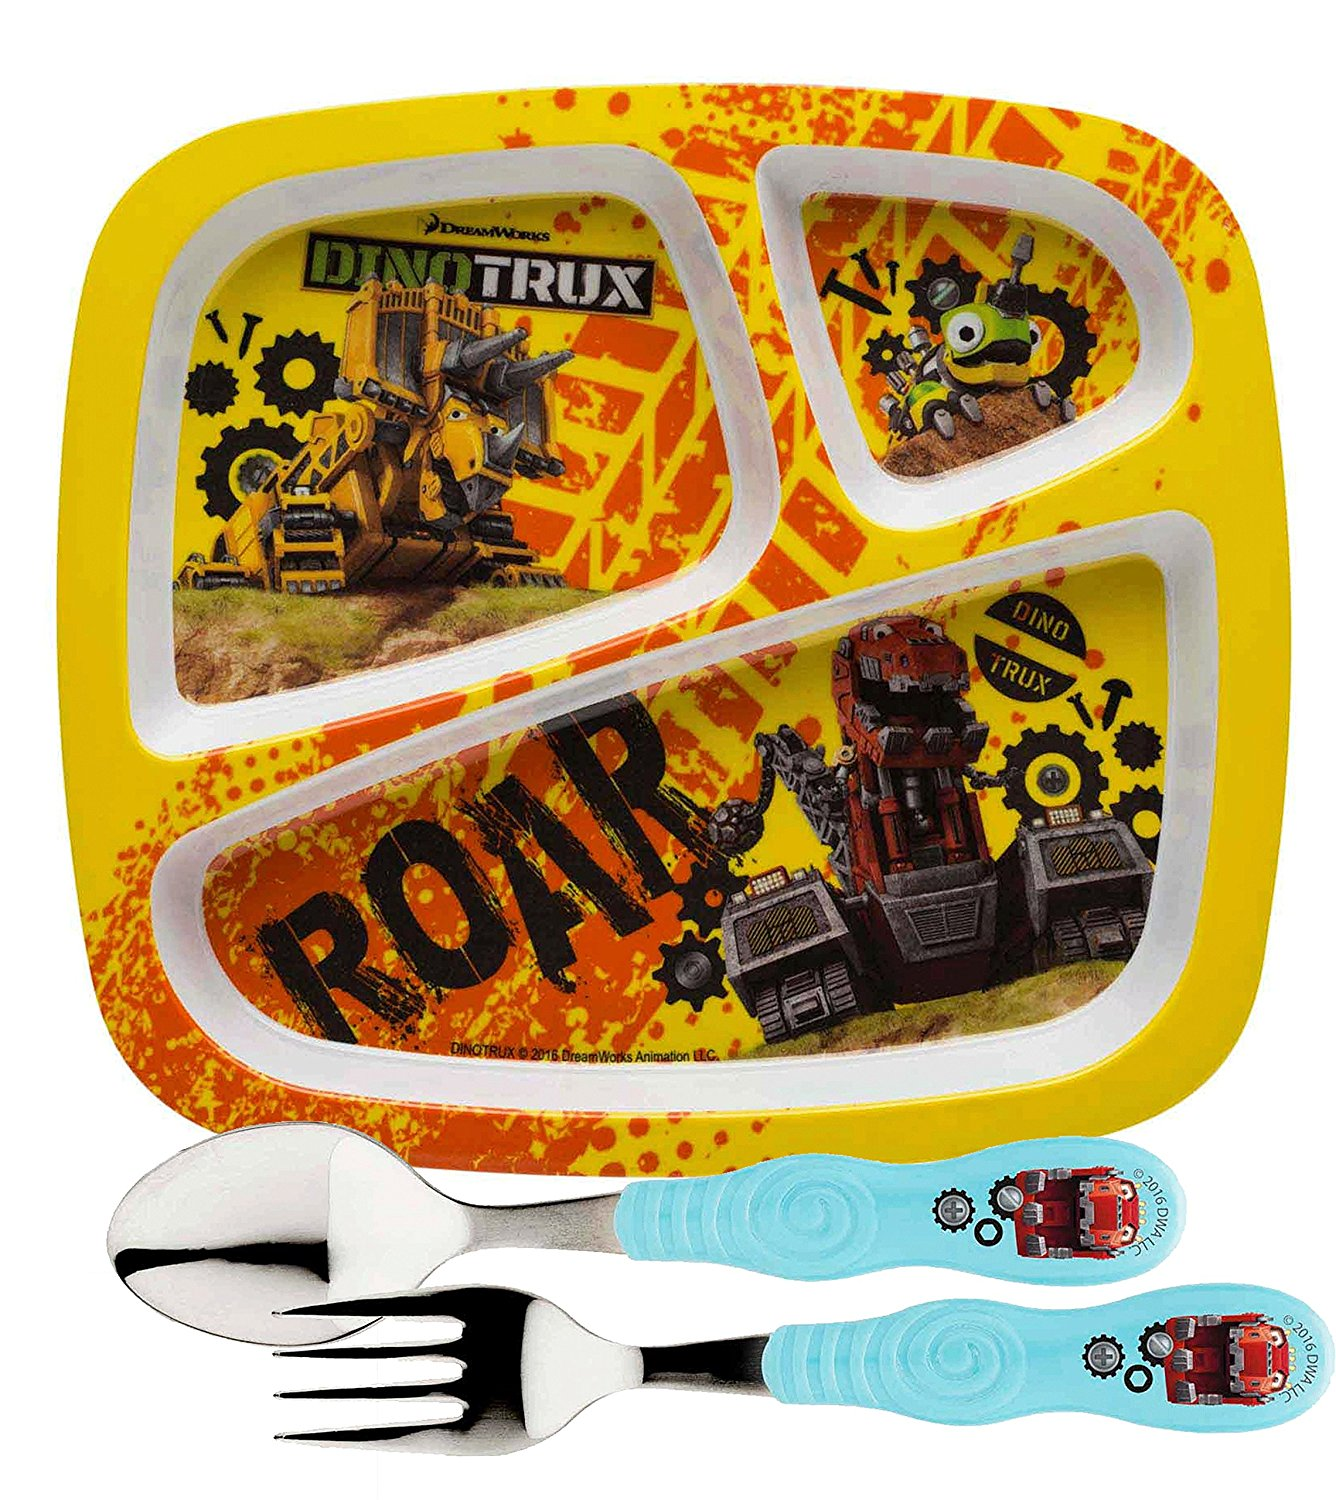 ! Designs Kids Dinnerware Set Includes Sectioned Plate, Fork & Spoon! Featuring Dreamworks Dinotrux Graphics! BPA-free, 3 Piece Set., (1) Dinotrux.., By Zak